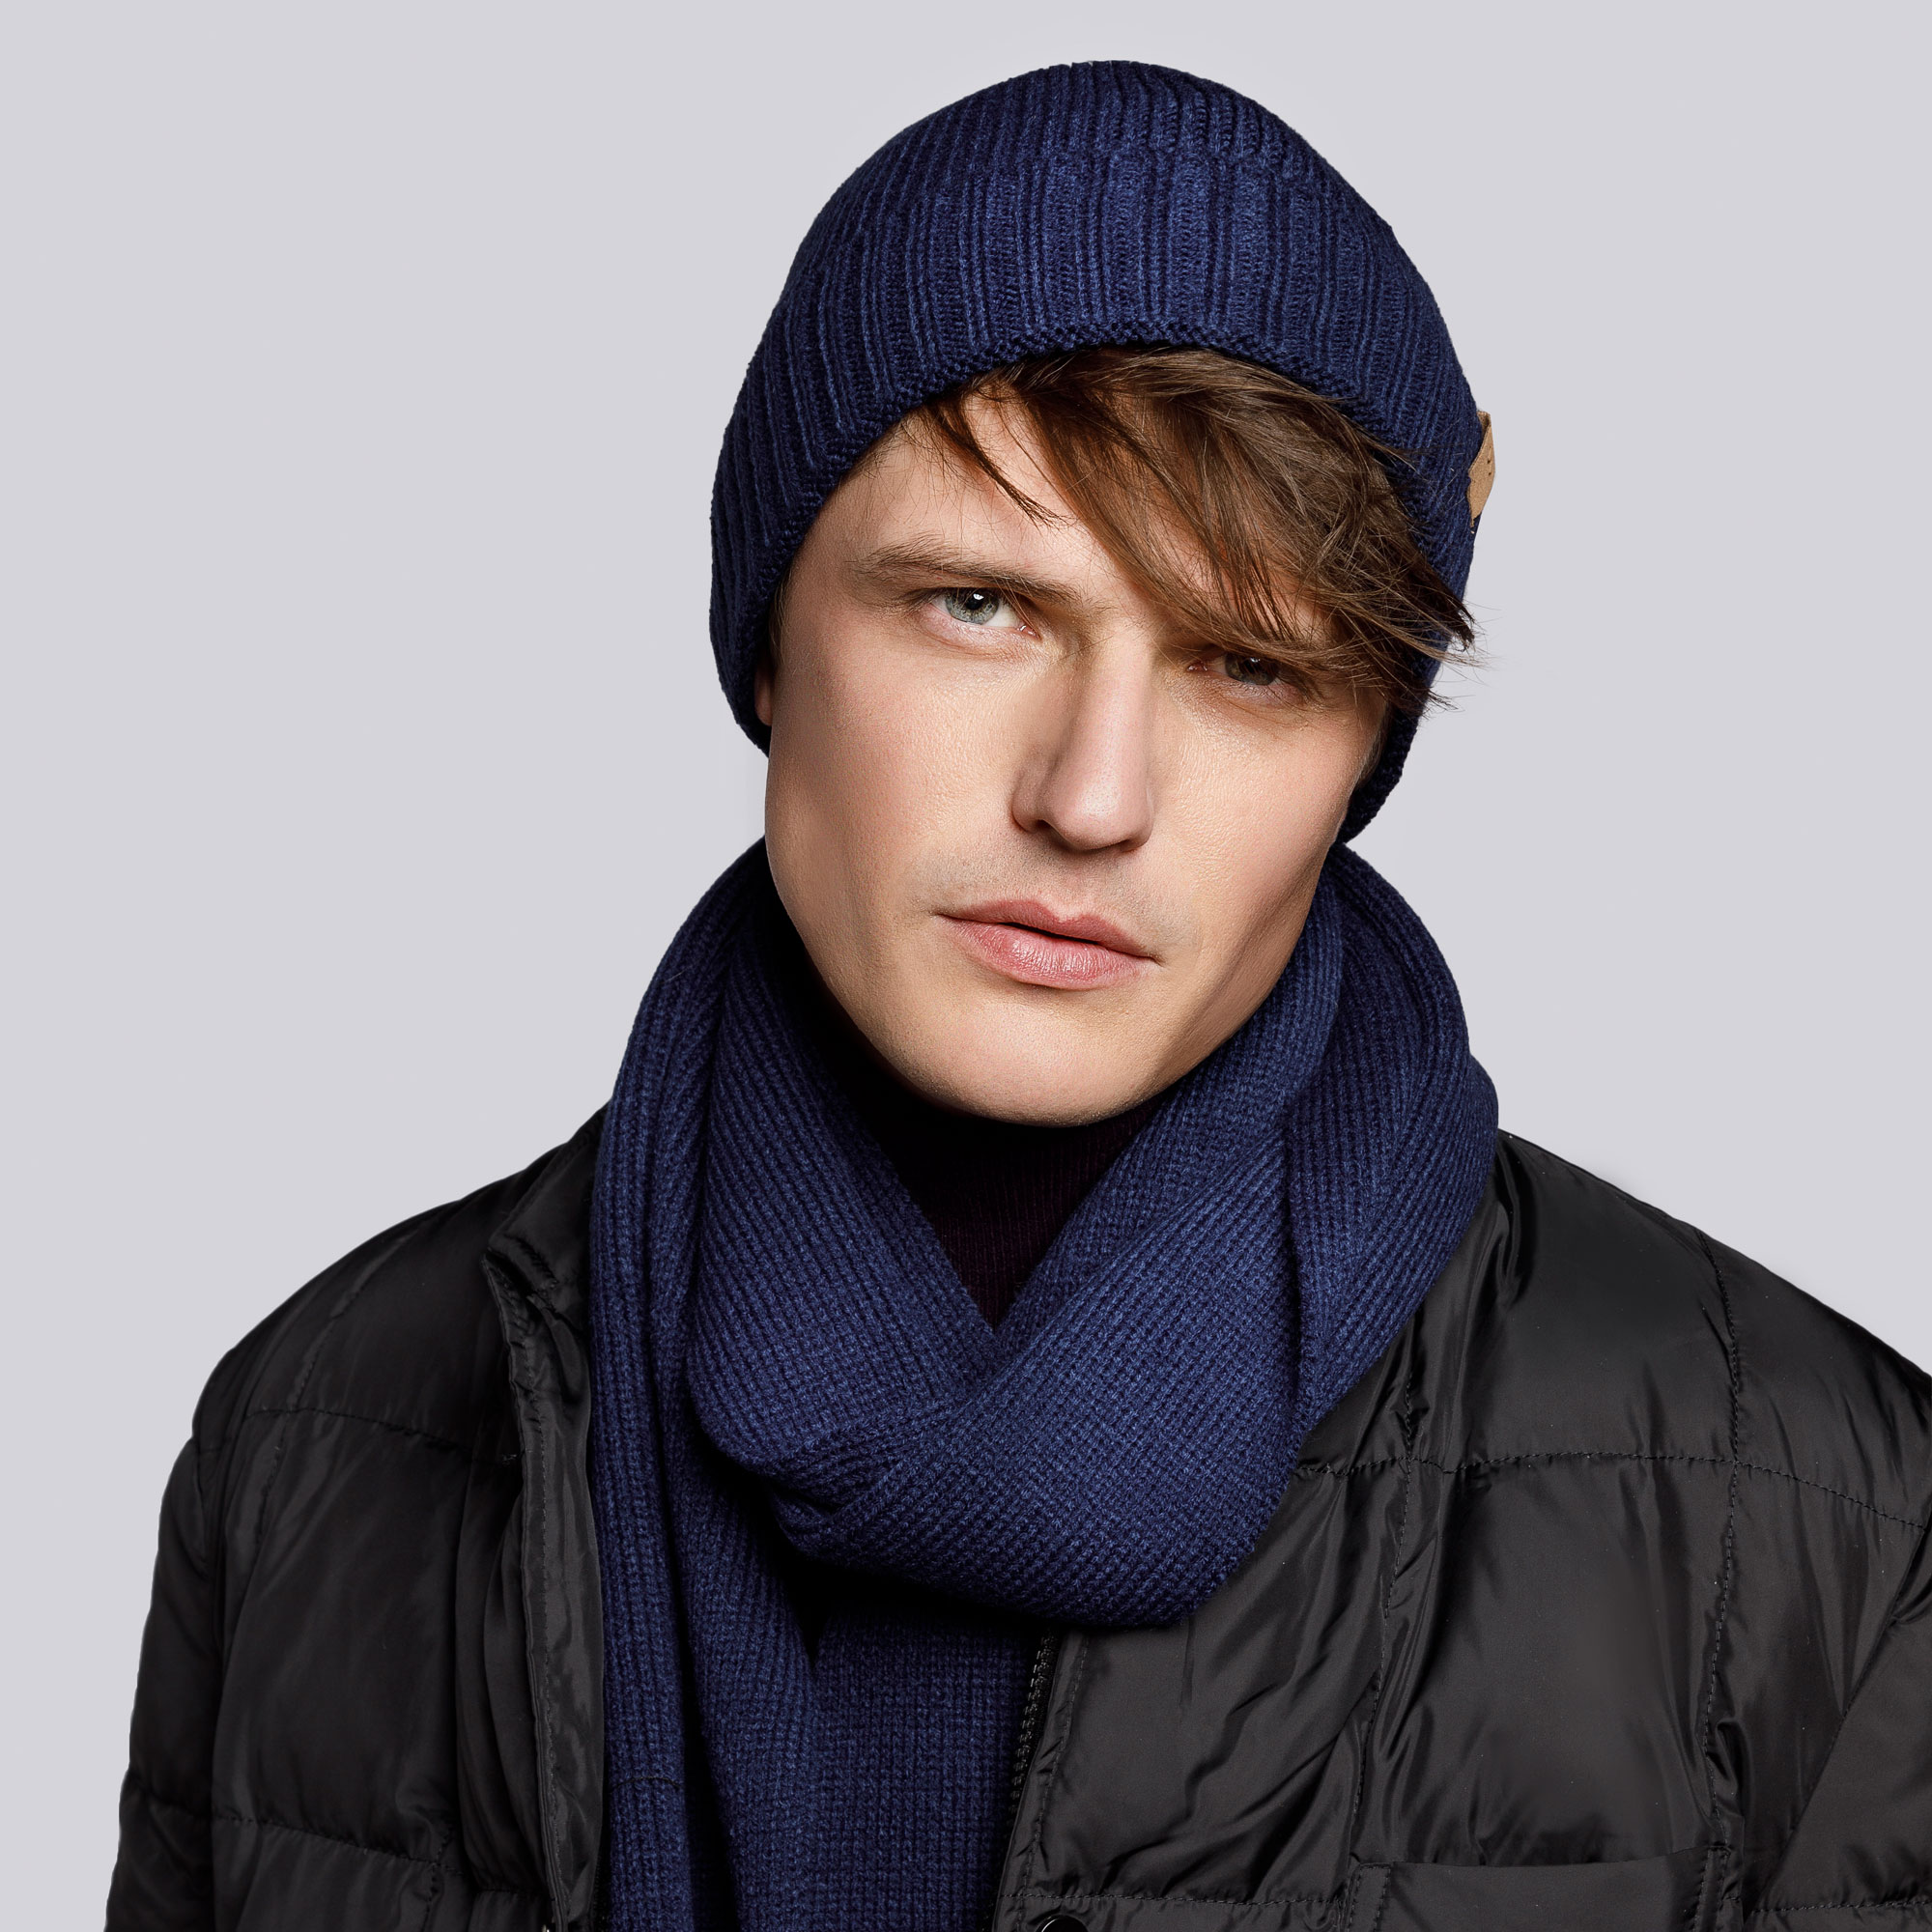 Men's winter wool hat and scarf, navy blue, 93-SF-003-7, Photo 1